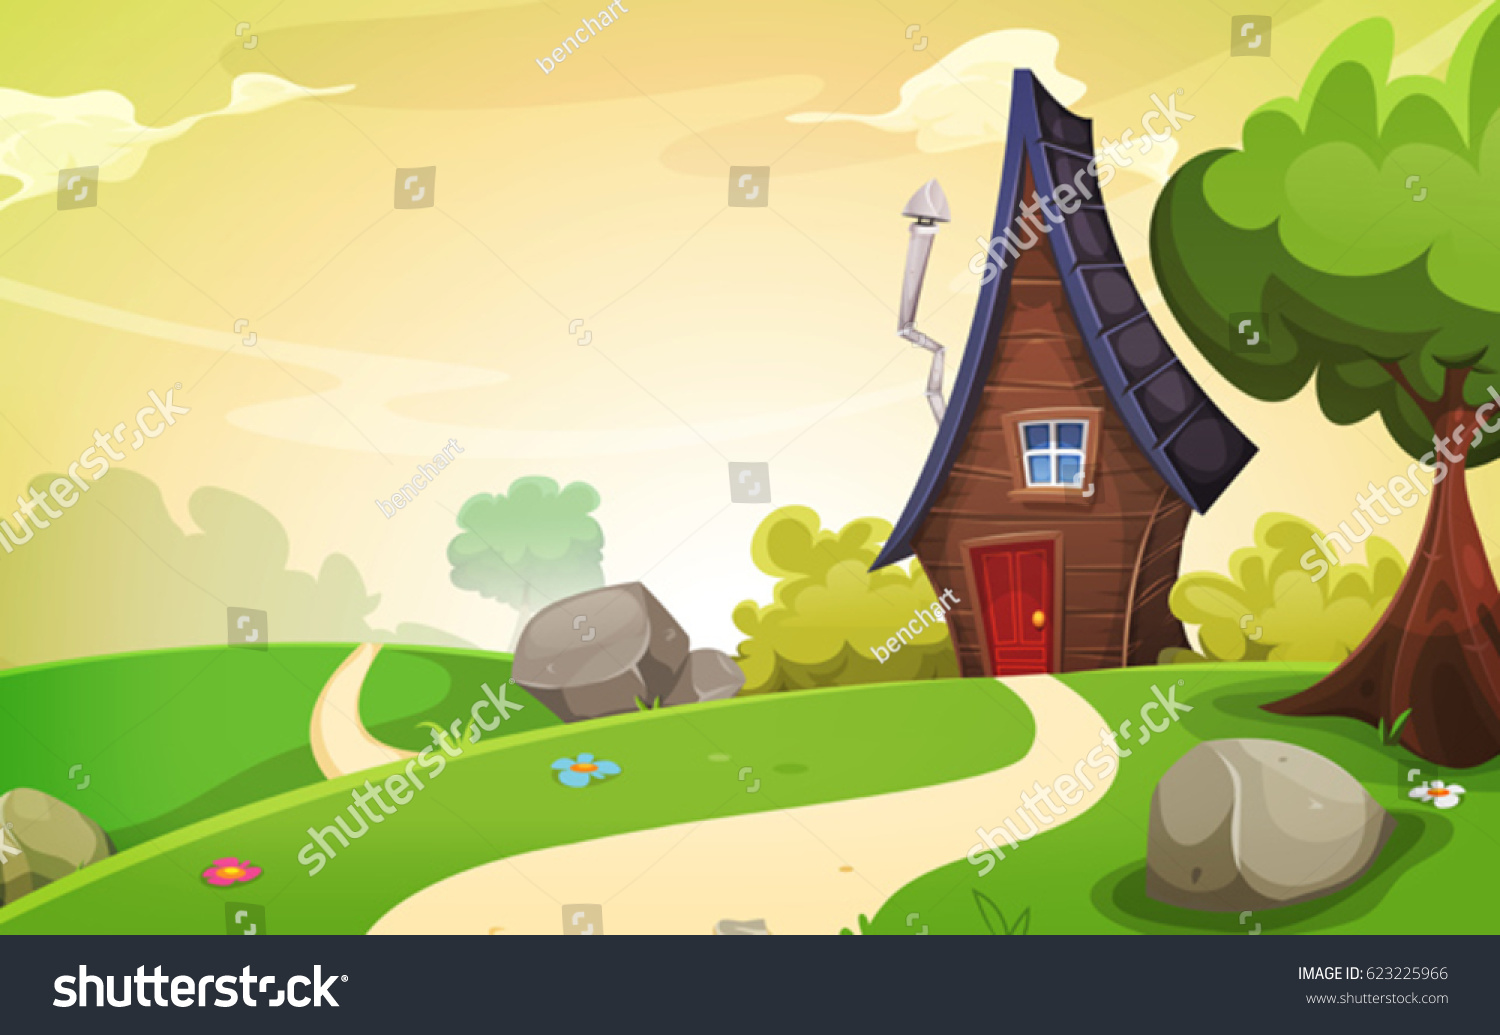 House inside spring landscape illustration of a cartoon spring or summer season landscape with country